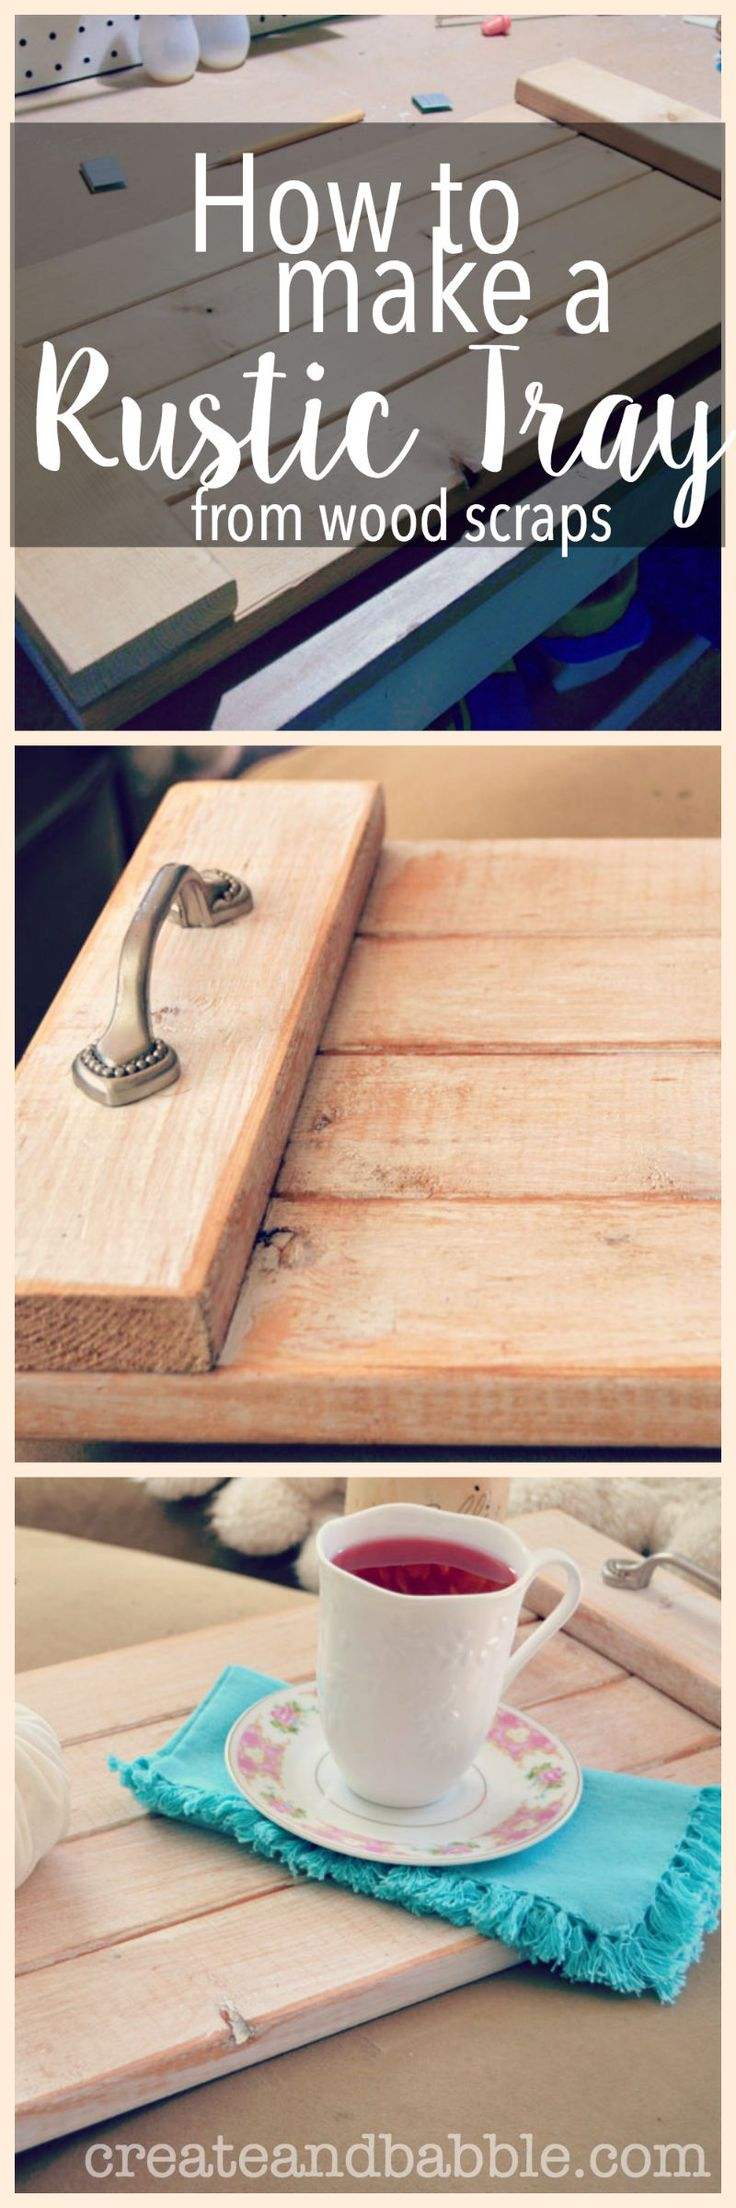 Learn how to make a rustic tray from wood scraps